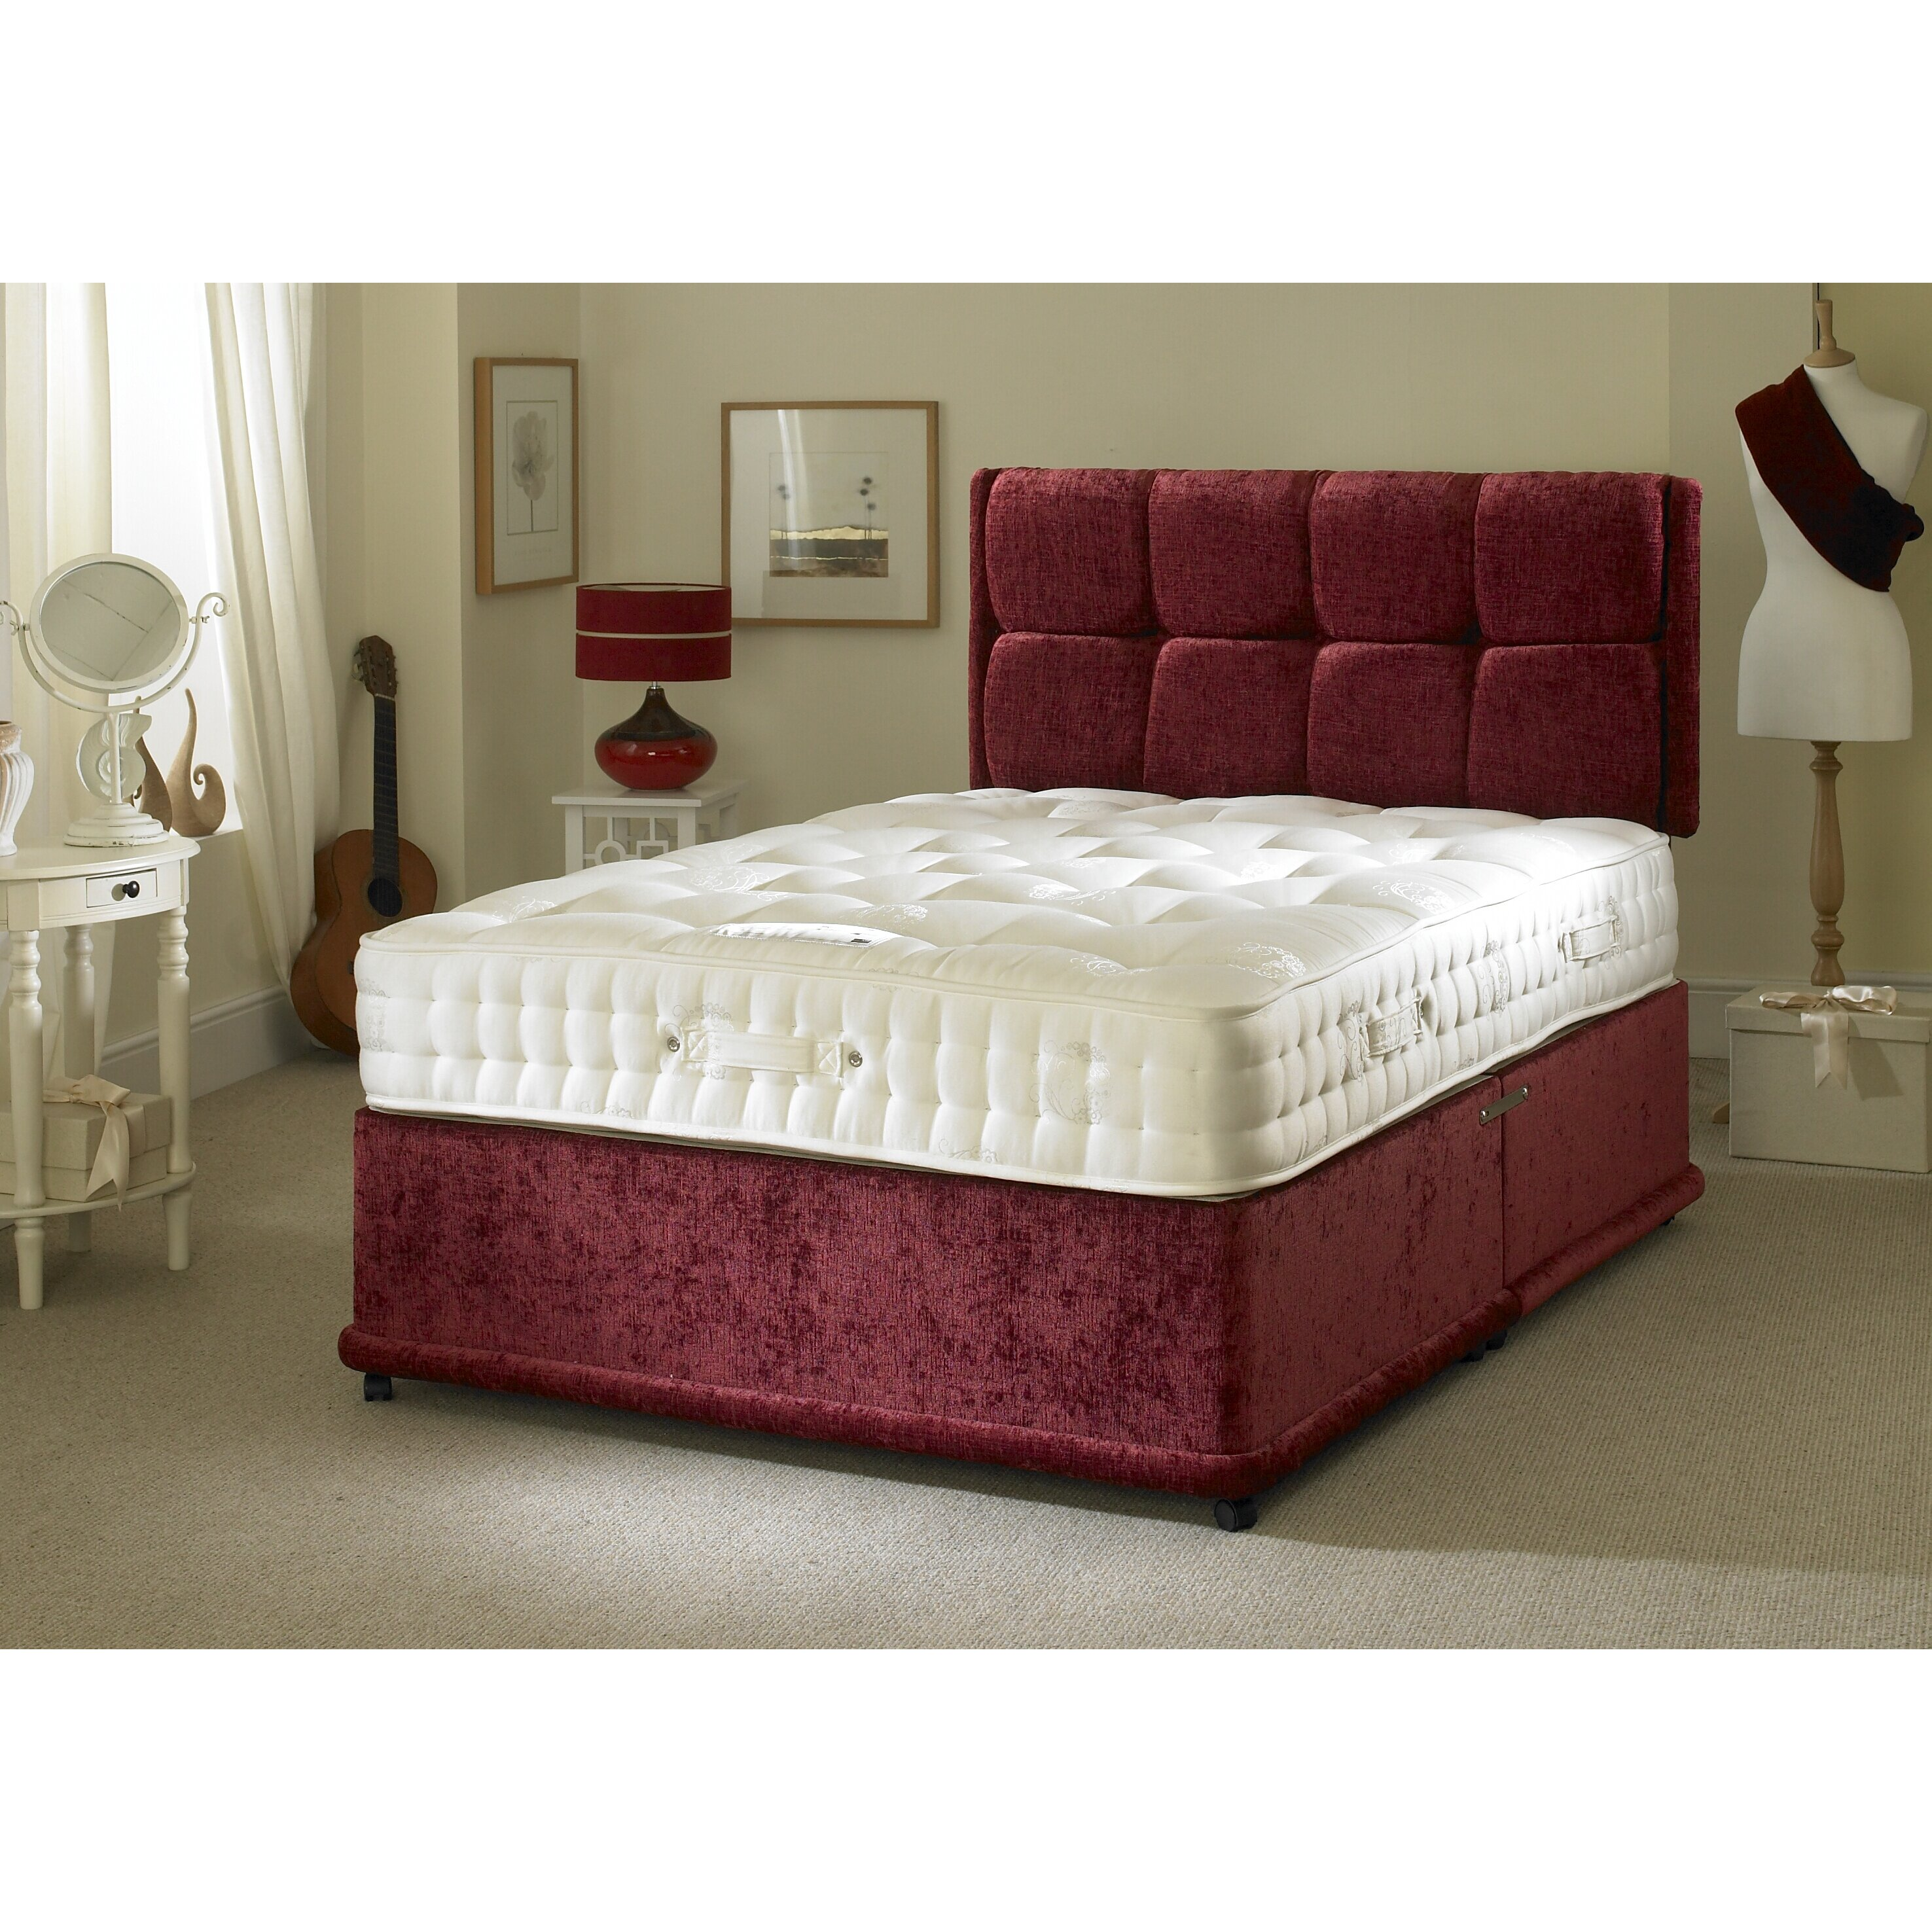 Bedmaster signature gold divan bed reviews for Bed master